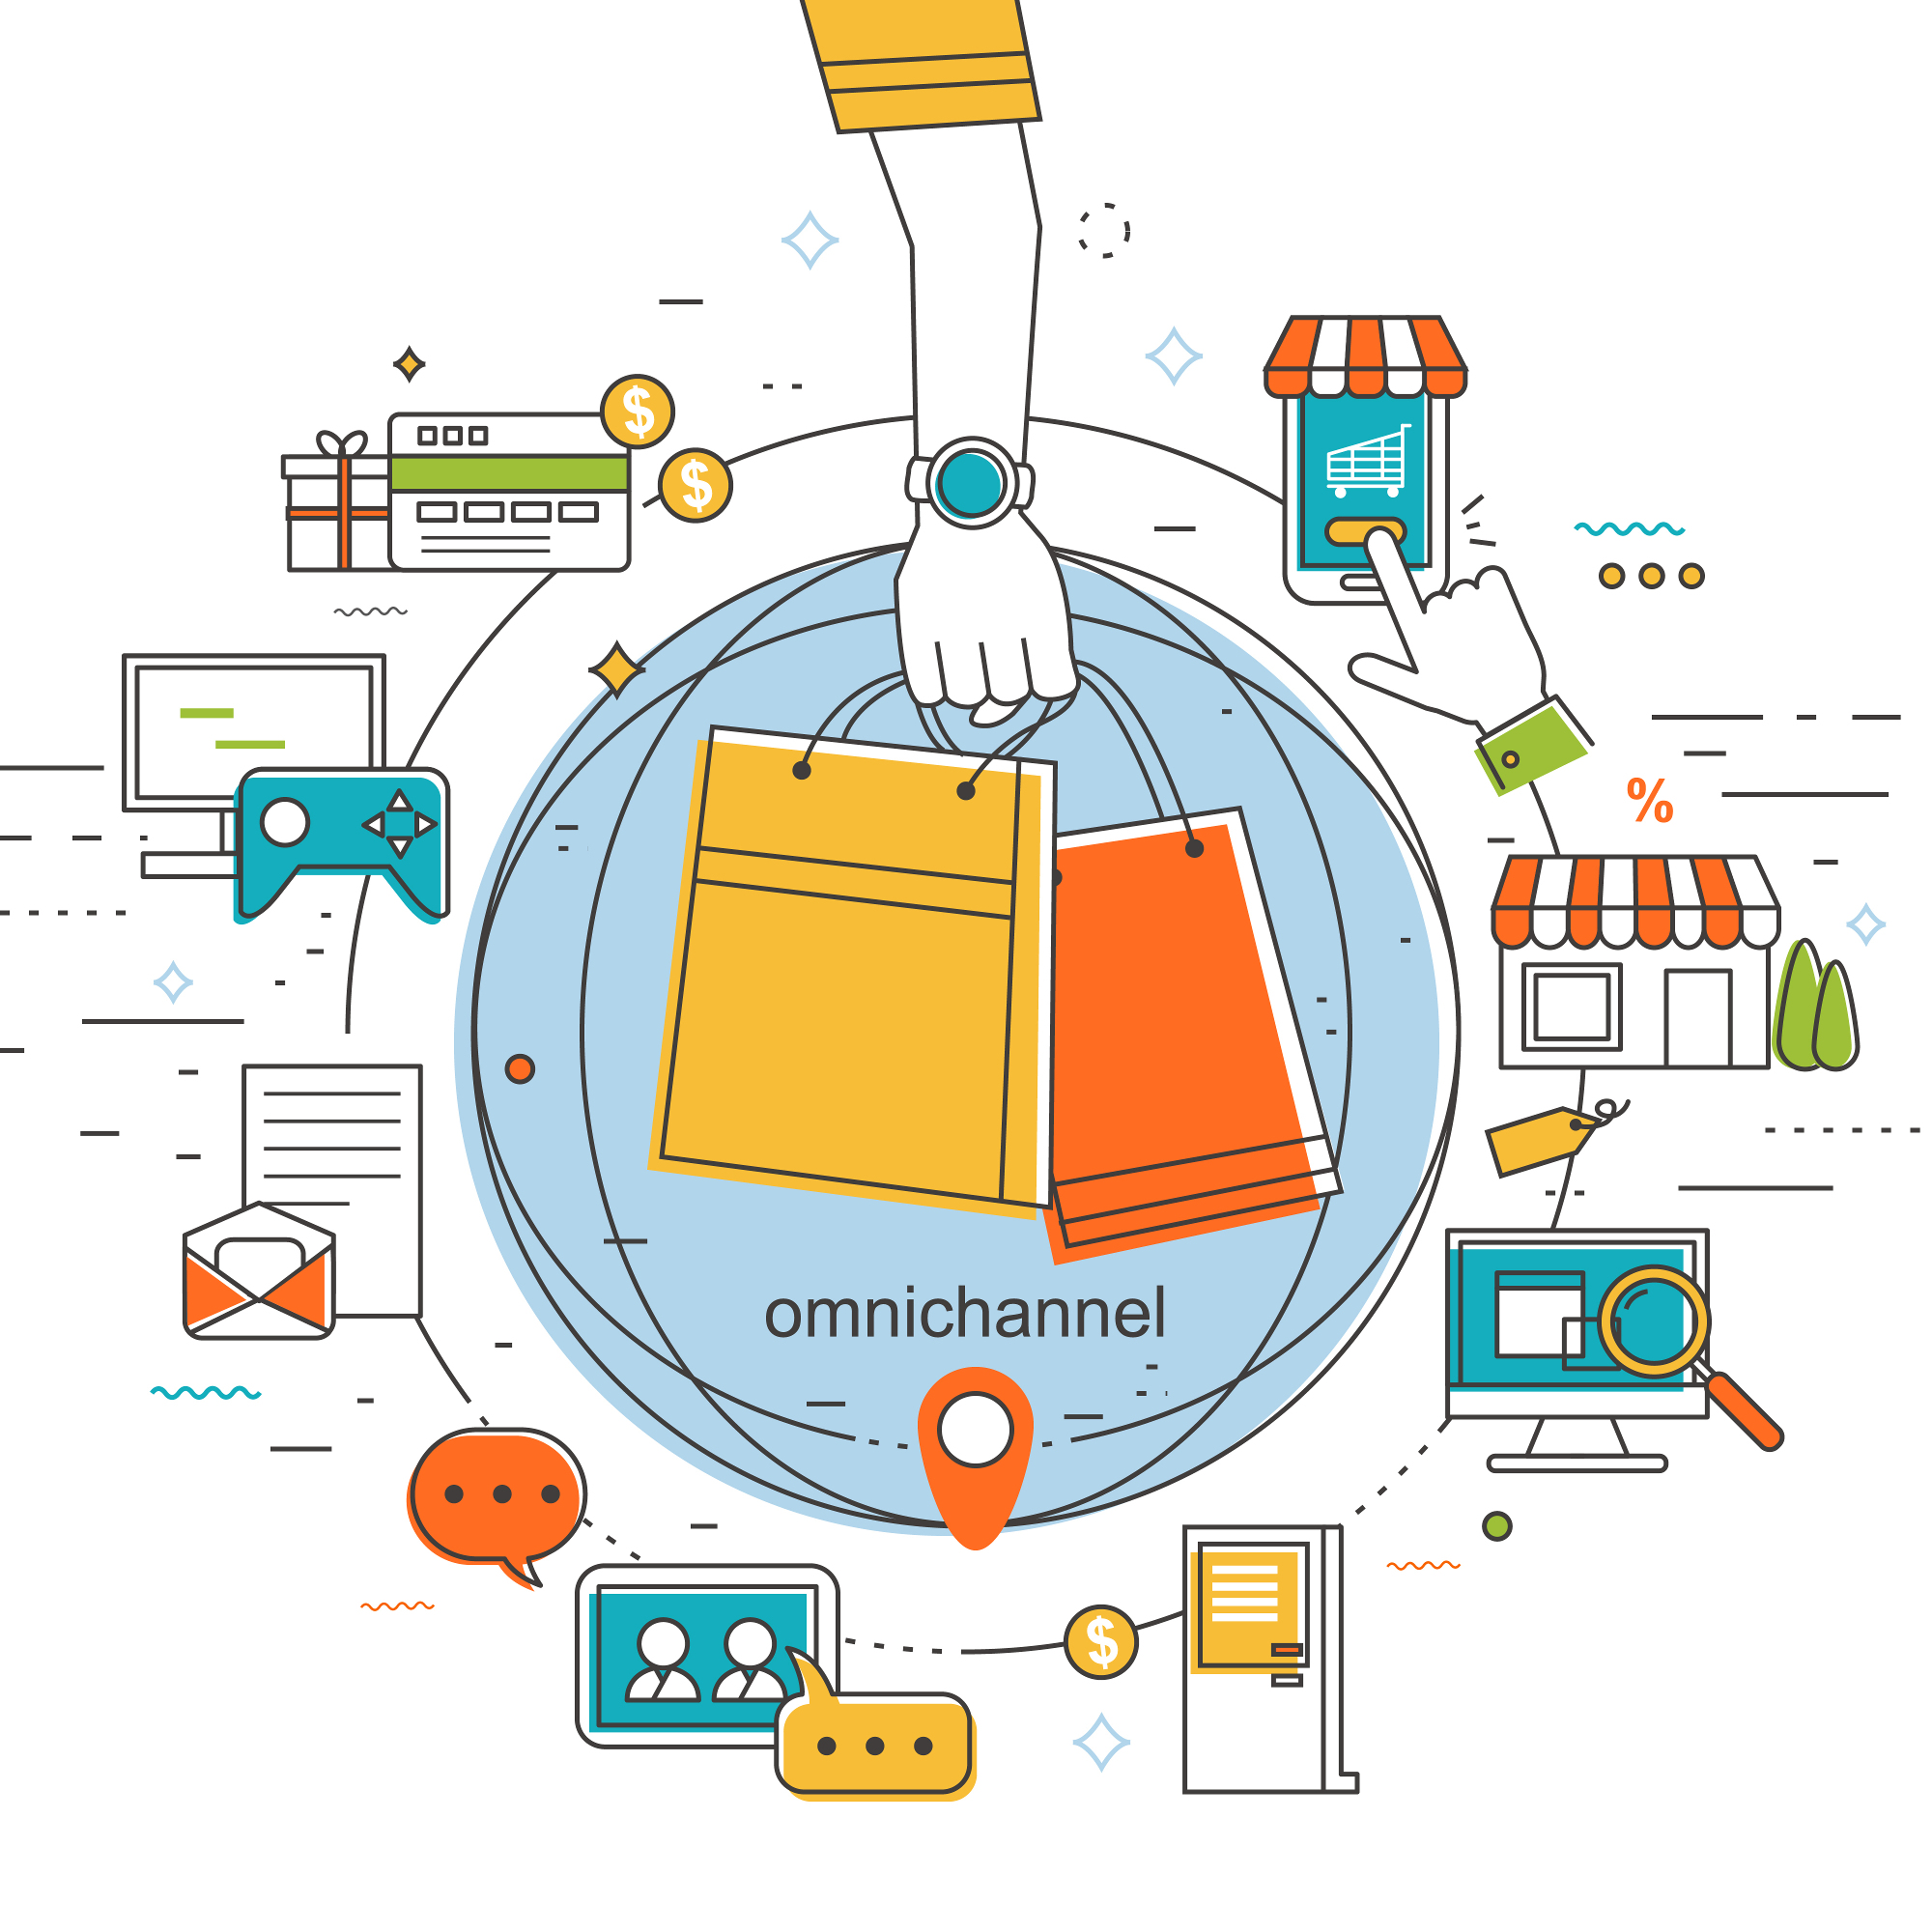 Omnichannel-Kampagnenmanagement